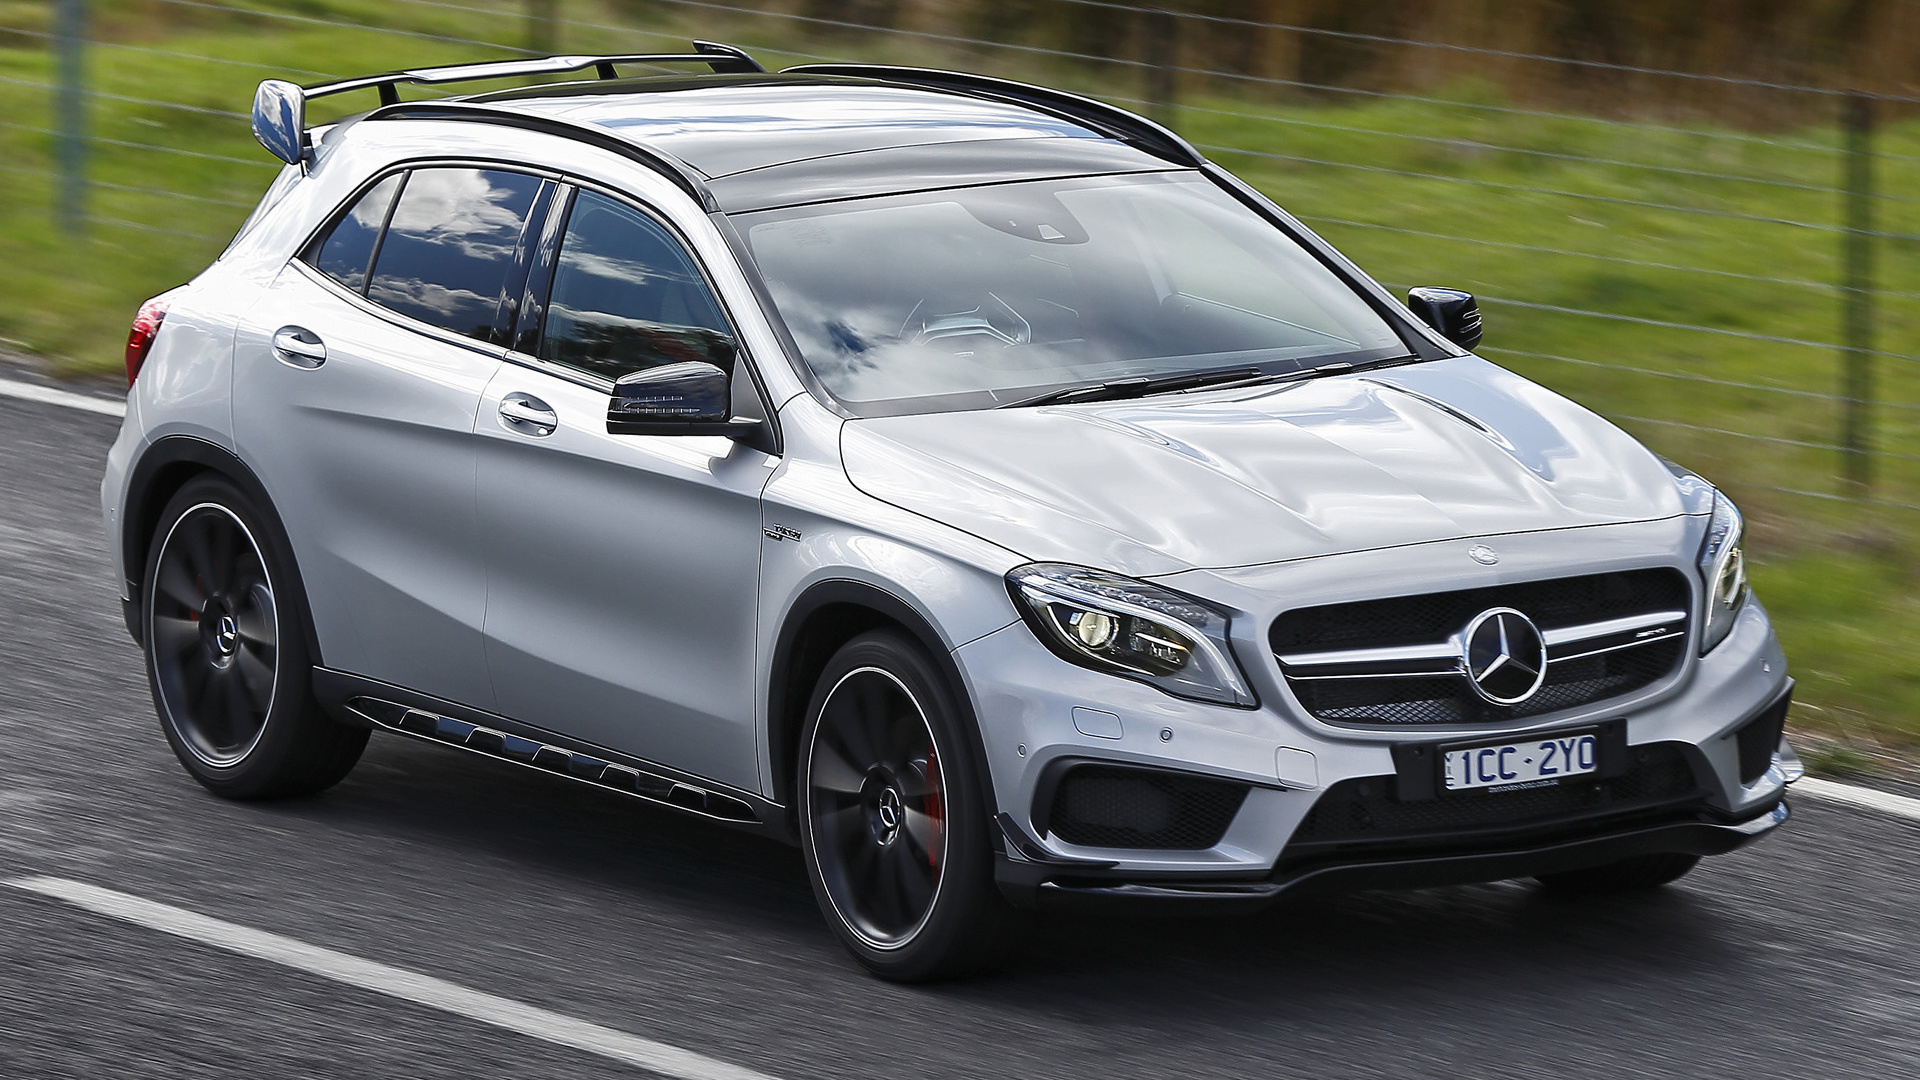 mercedes benz gla 45 amg aerodynamics package 2014 au wallpapers and hd images car pixel. Black Bedroom Furniture Sets. Home Design Ideas